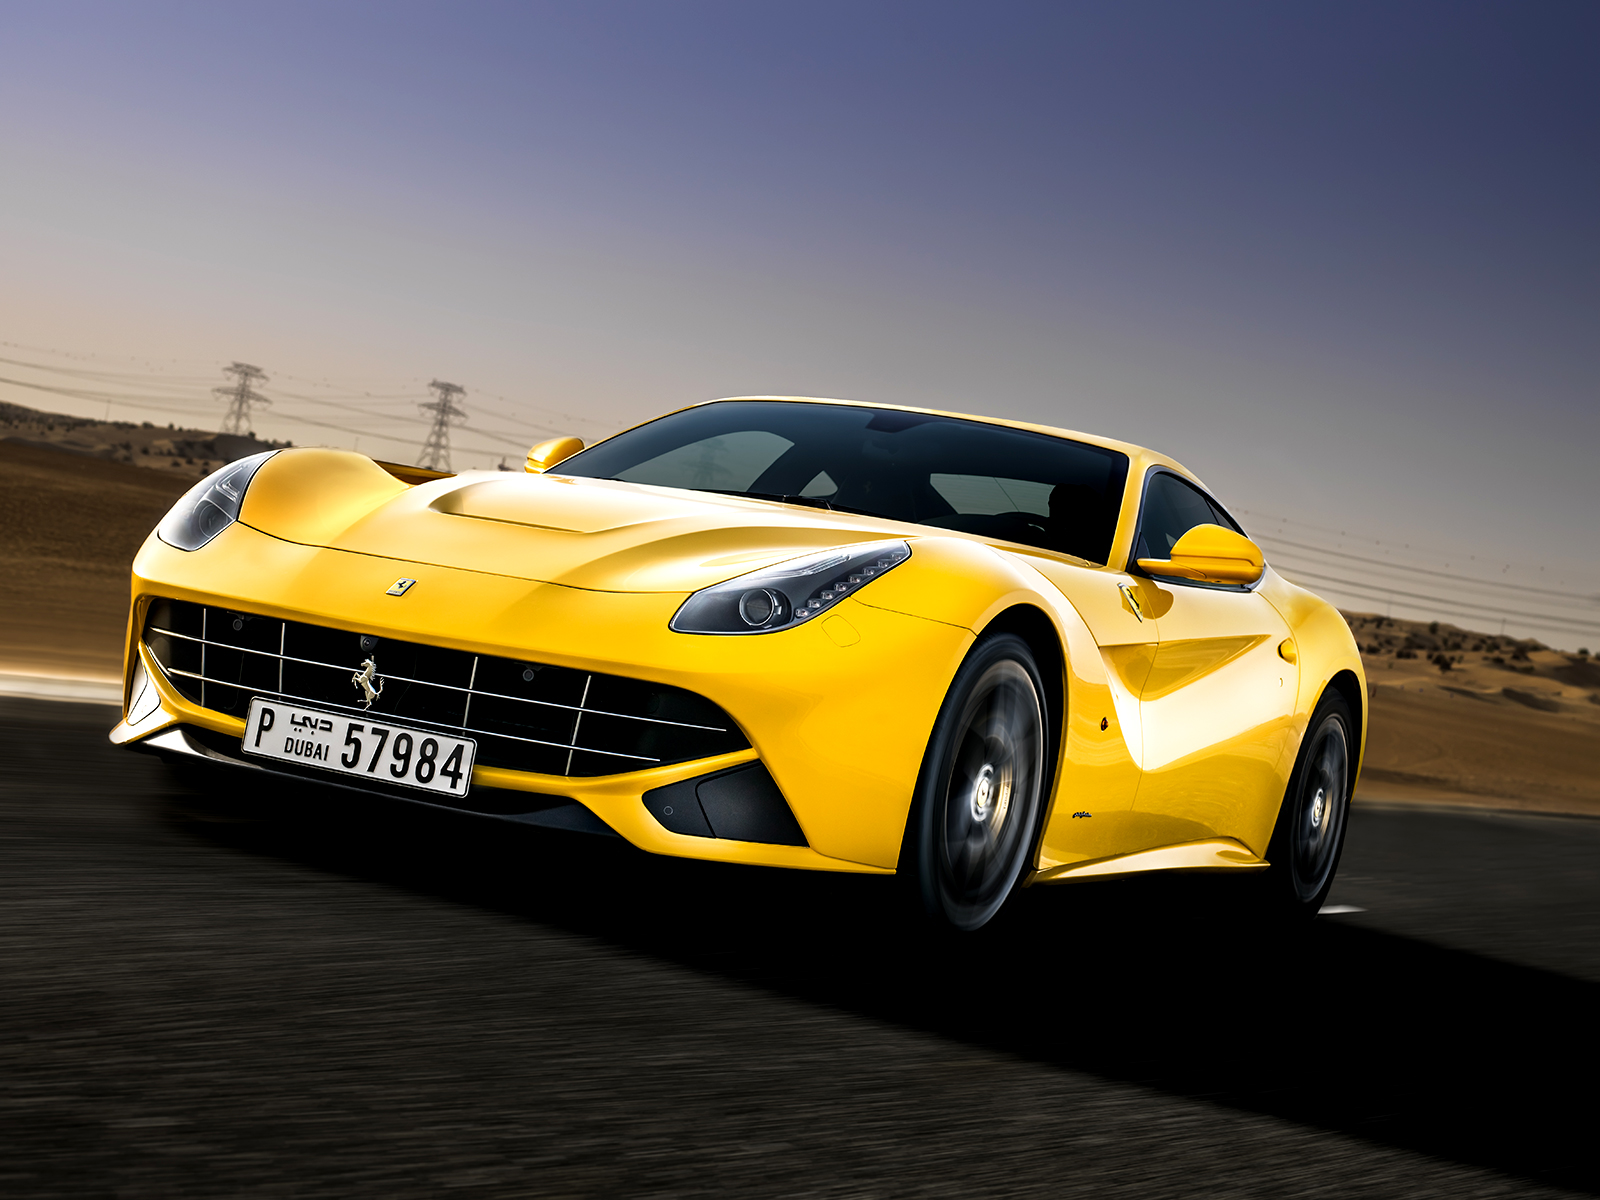 Ferrari F12 Yellow Exotic Car Wallpaper   Galleryautomo 1600x1200